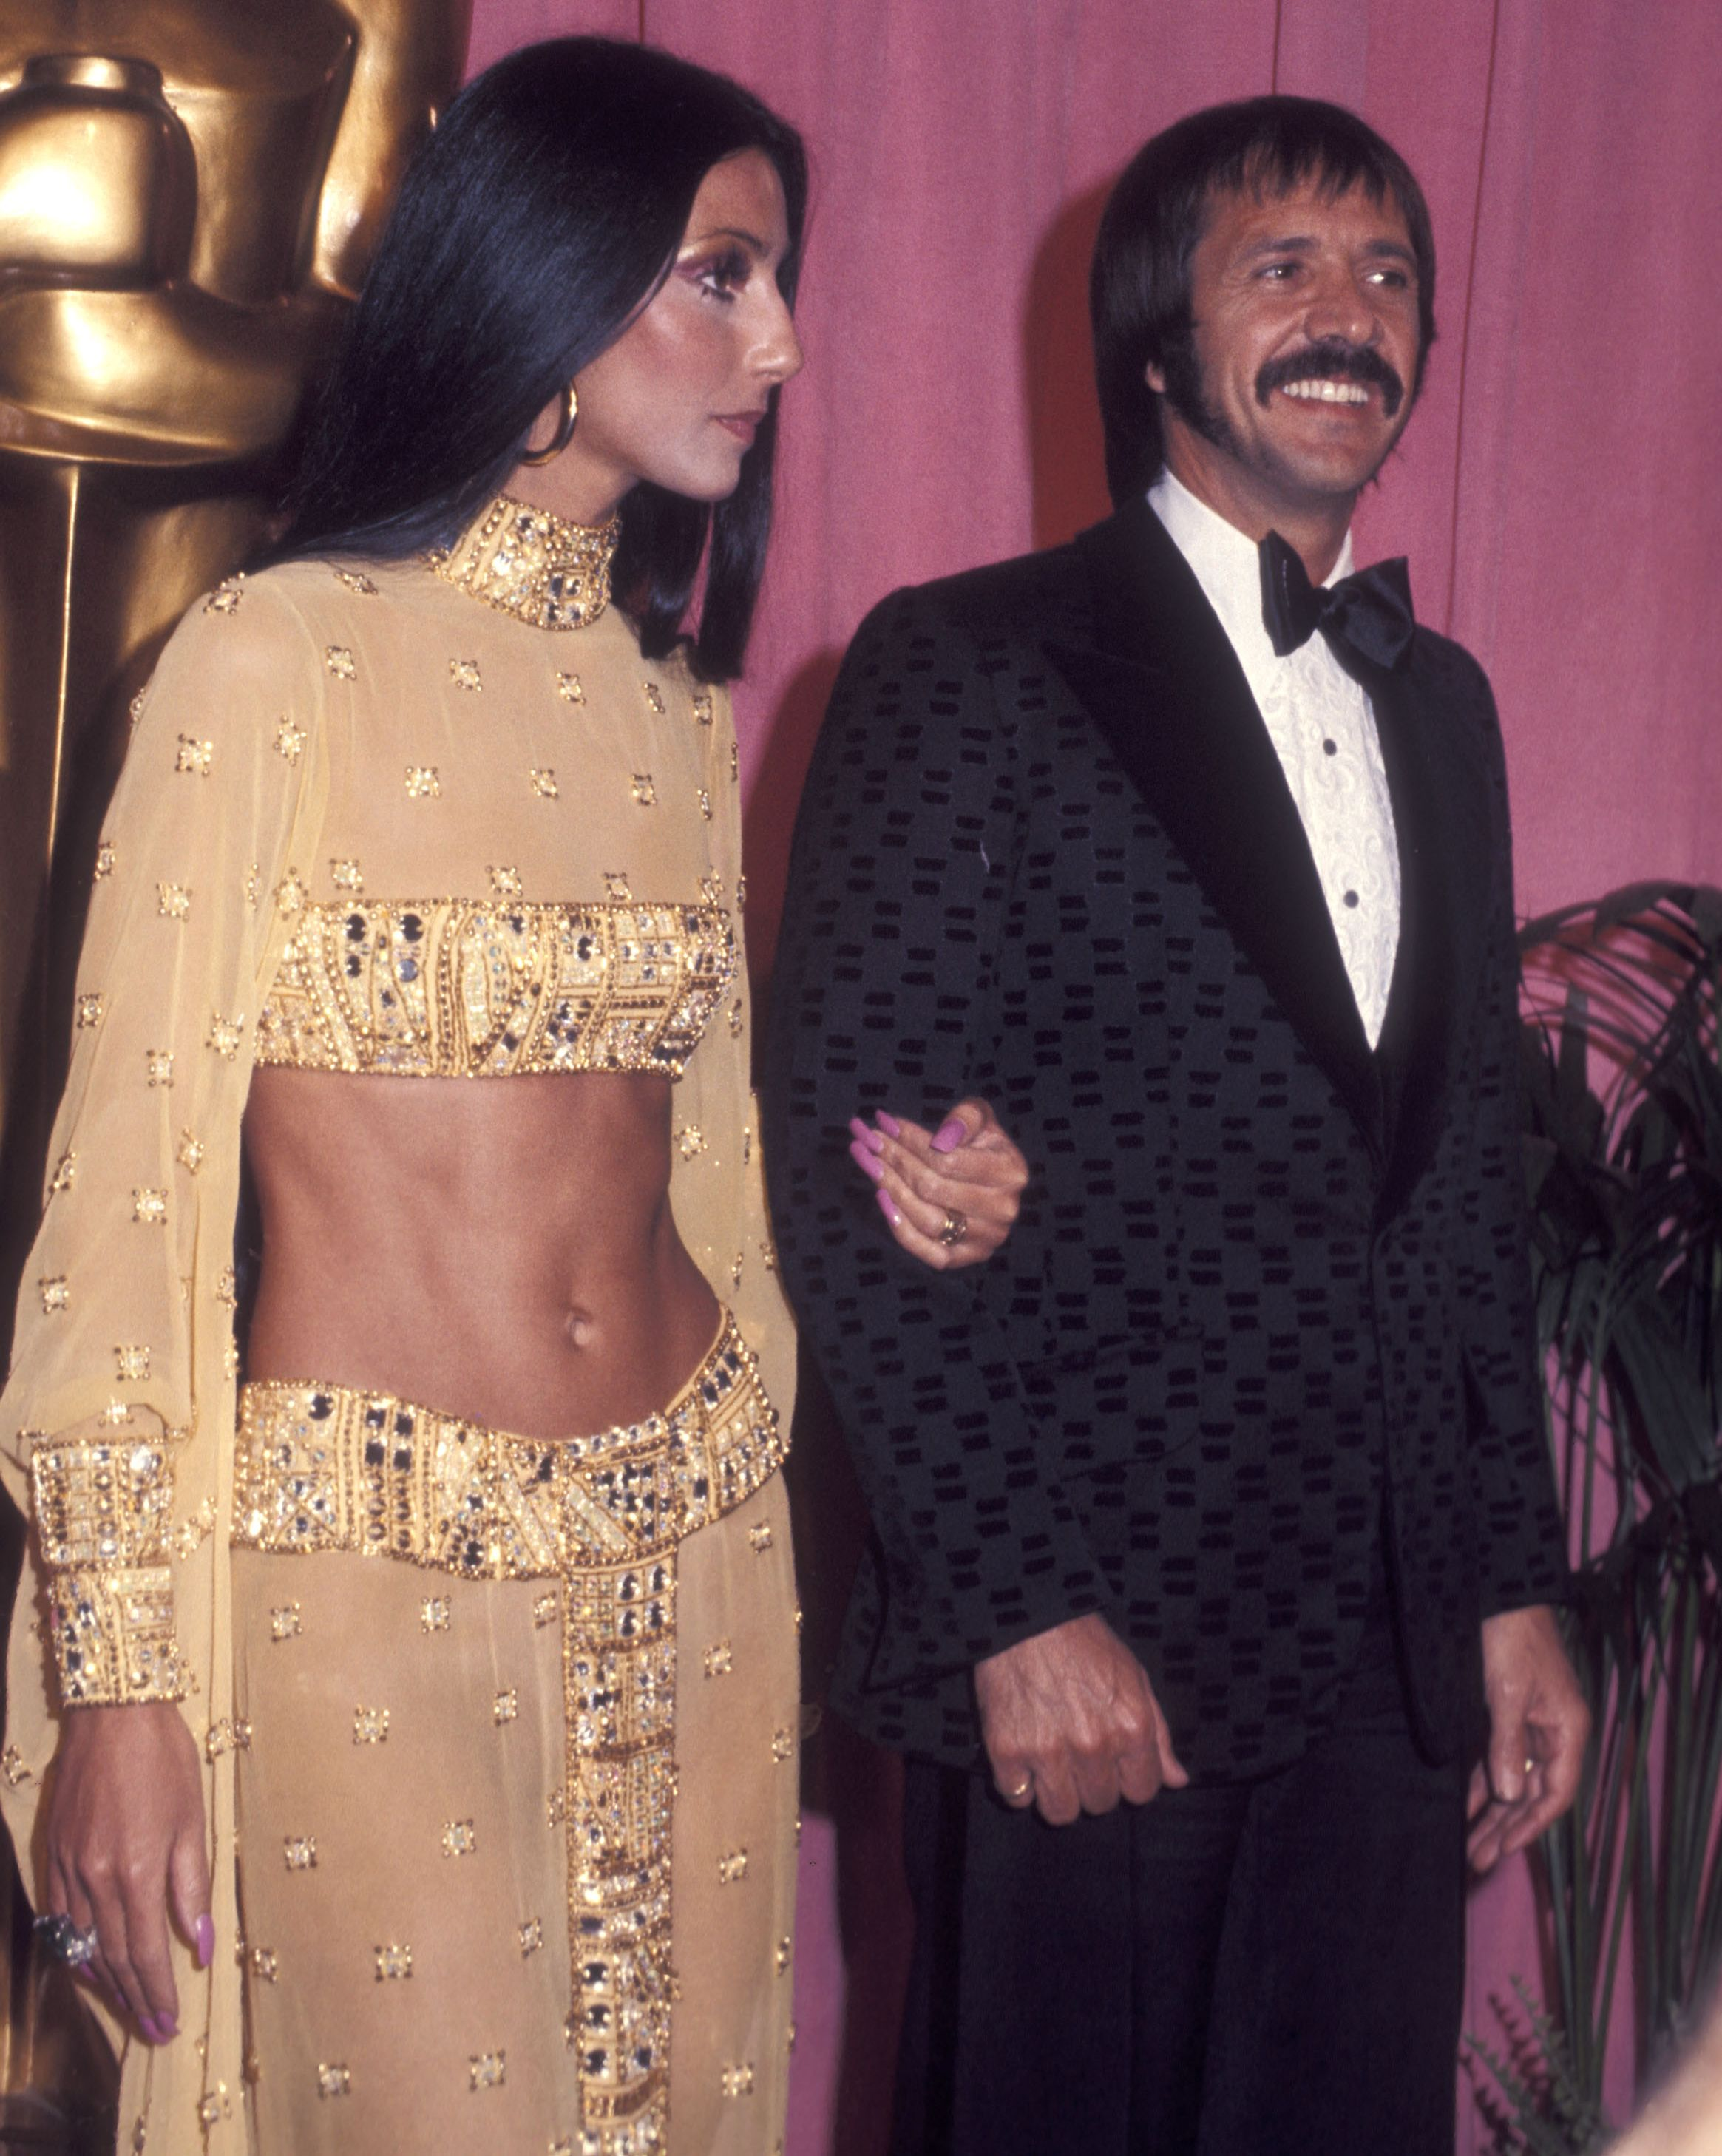 Cher dons a golden two-piece on the arm of her husband and singing partner, Sonny Bono.